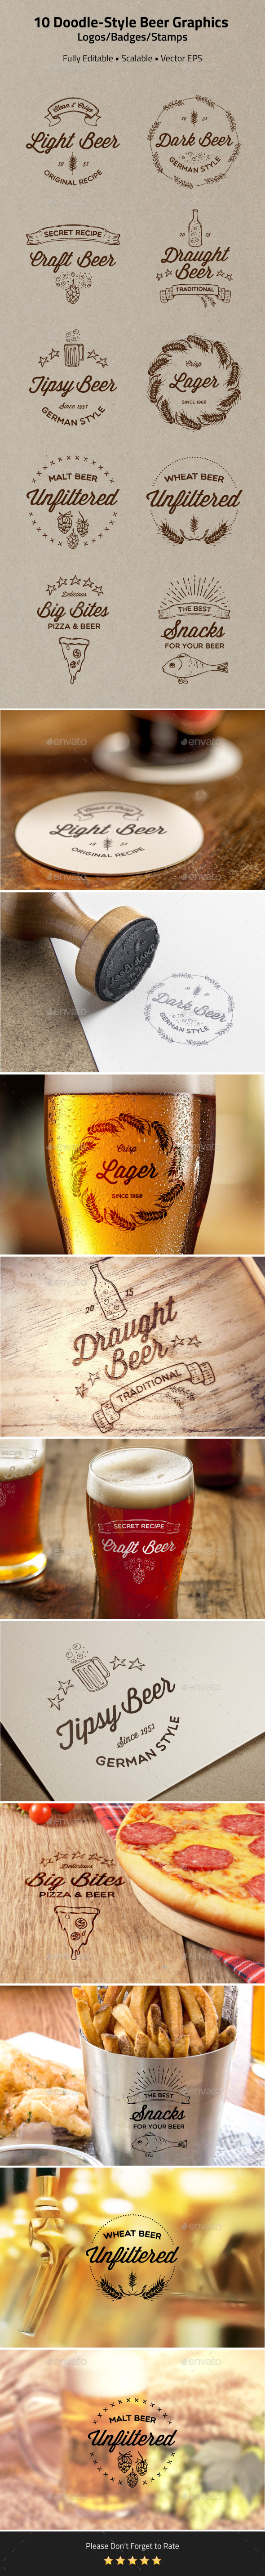 GraphicRiver 10 Doodle-Style Beer Badges Logos Stamps 10895309